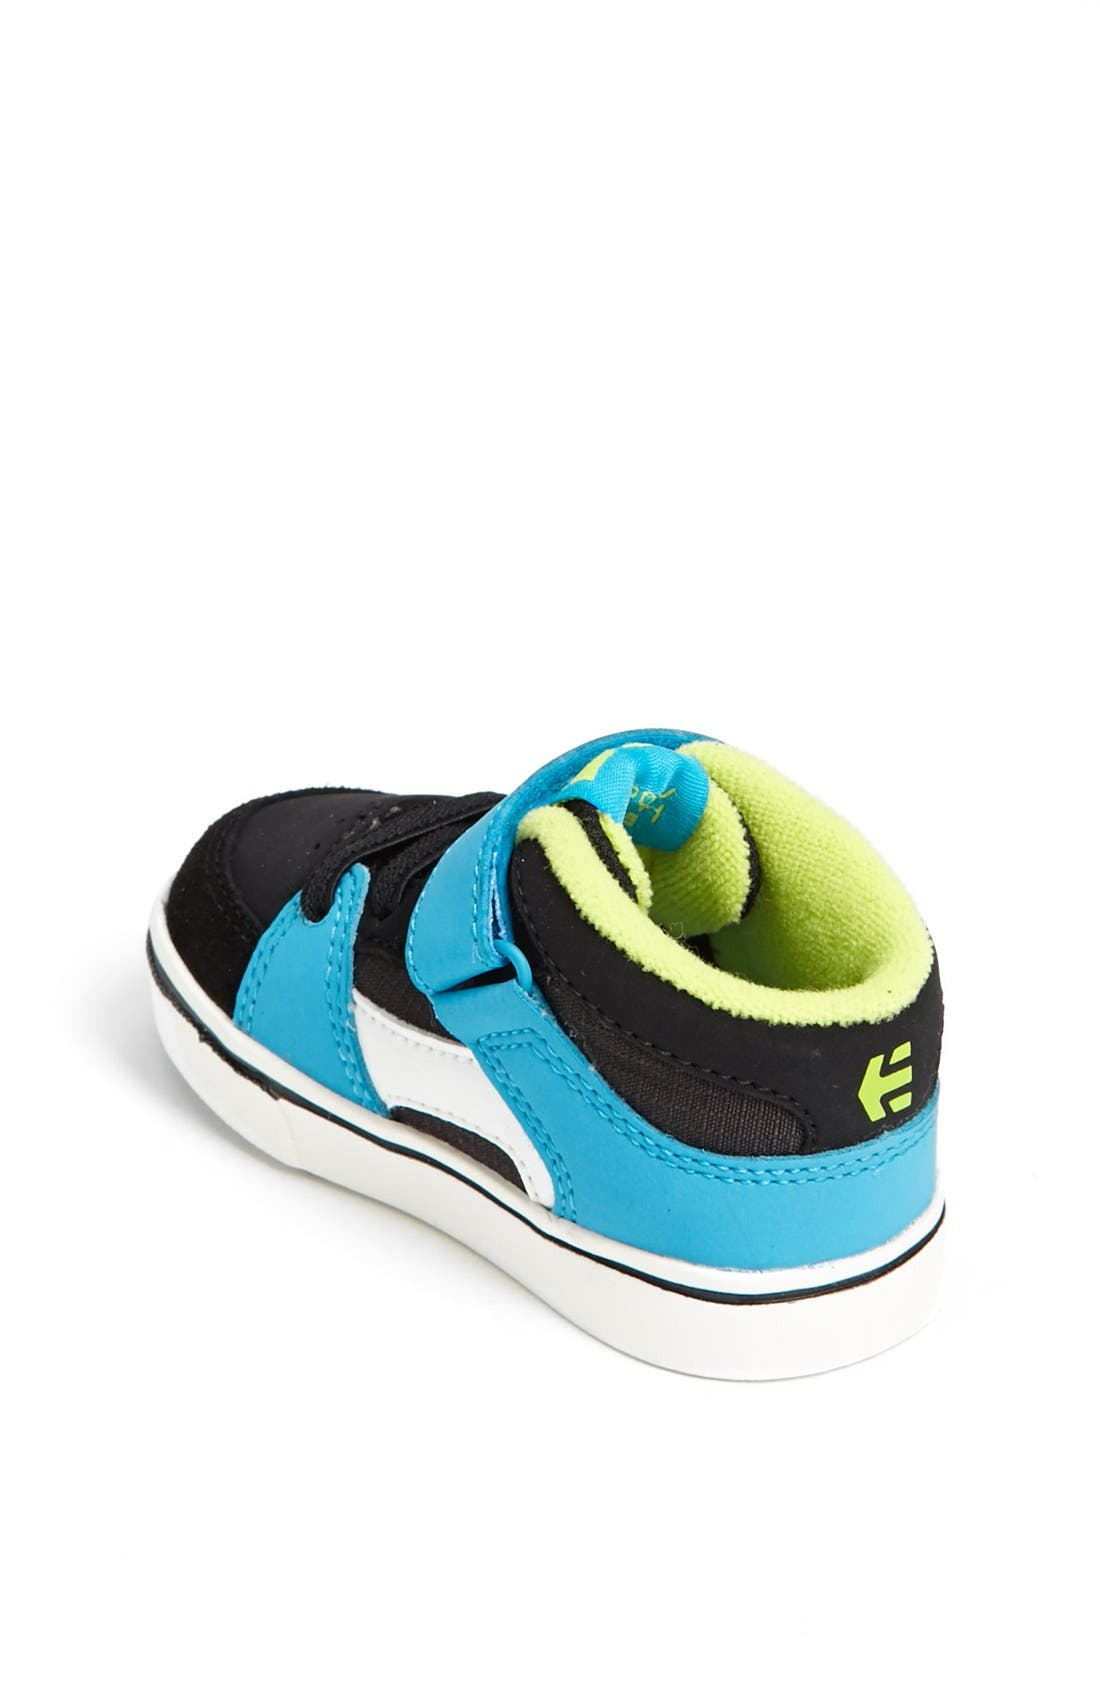 Alternate Image 2  - Etnies 'RVM' Strap Sneaker (Walker & Toddler)